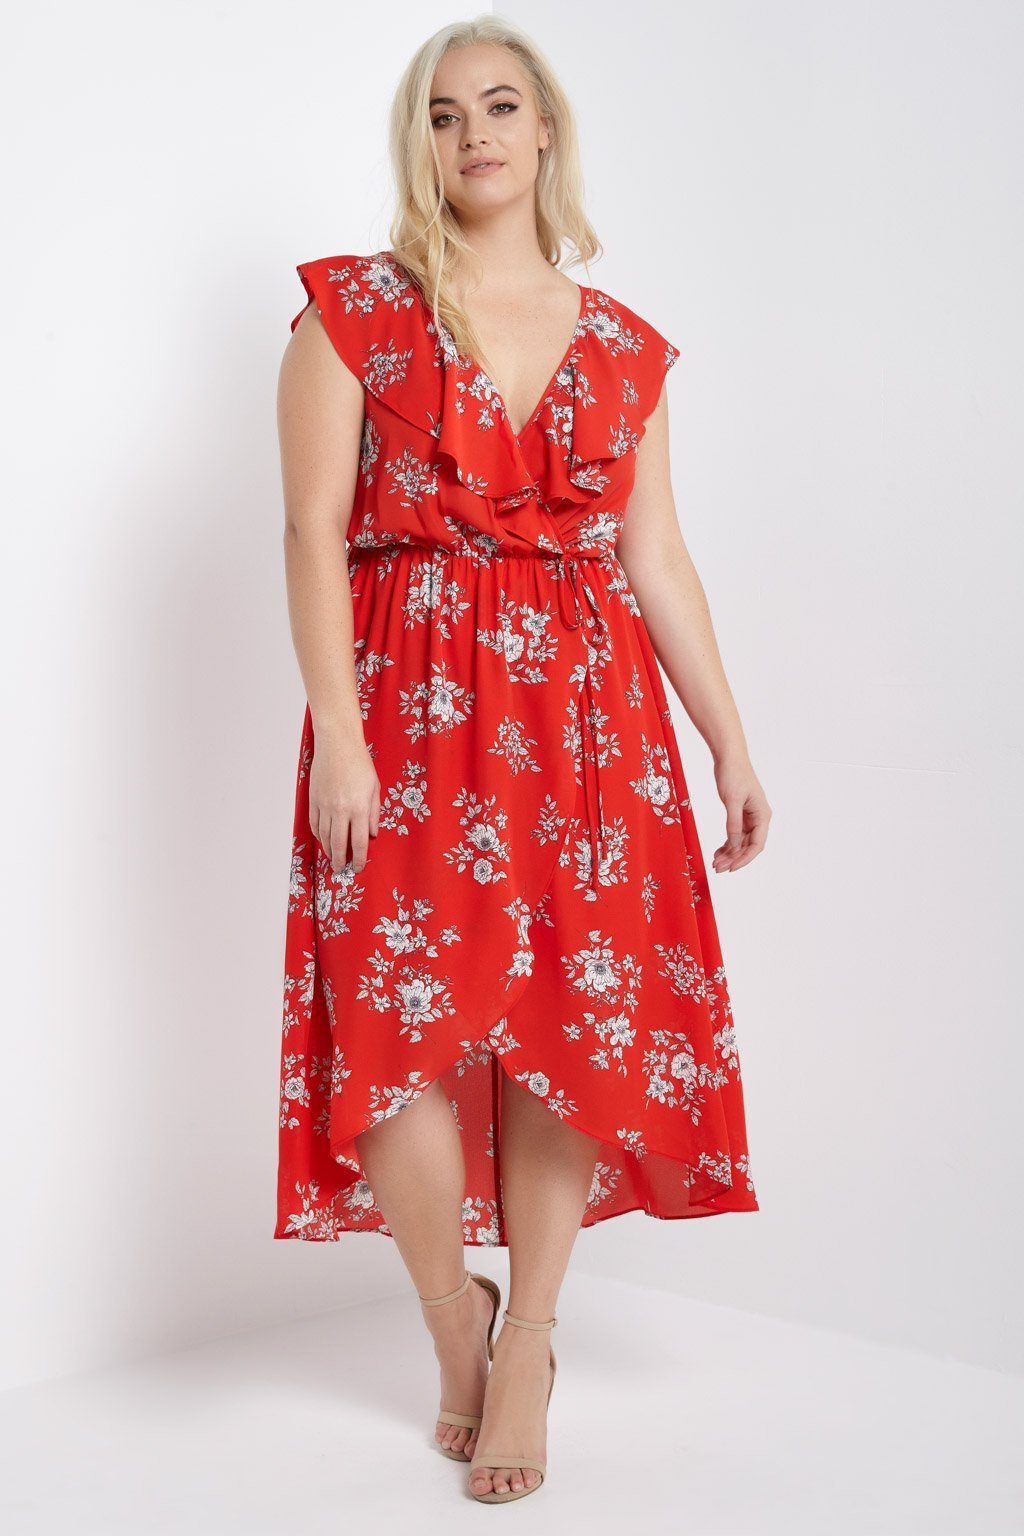 Poshsquare Plus 1XL / Red Floral Midi Dress Plus Size